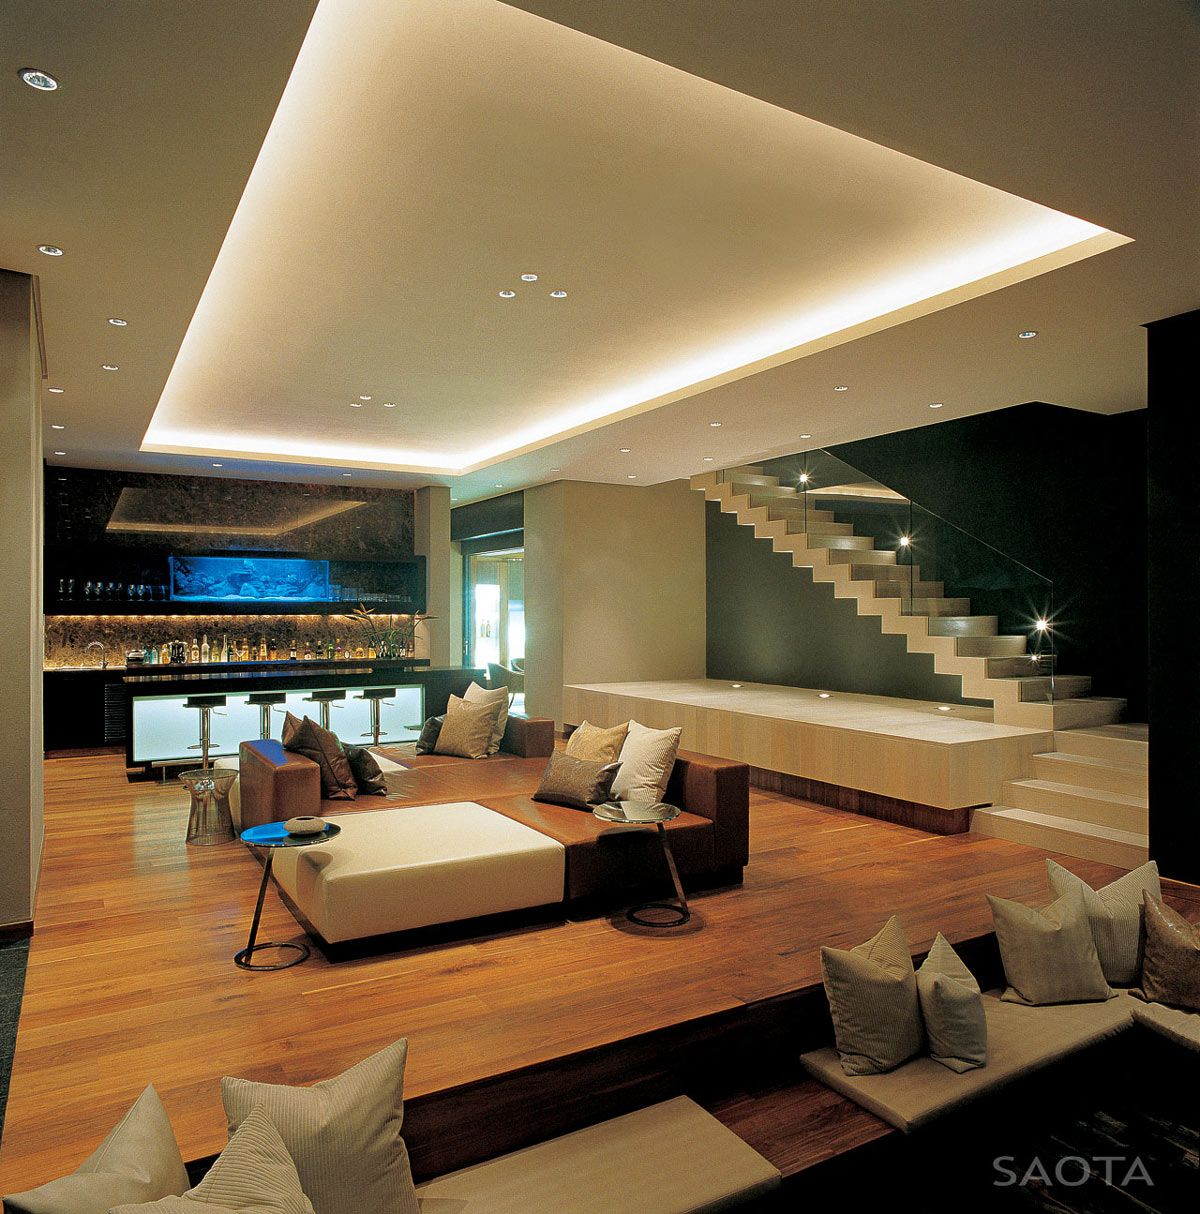 St Leon 10 In Cape Town South Africa By Saota And Antoni